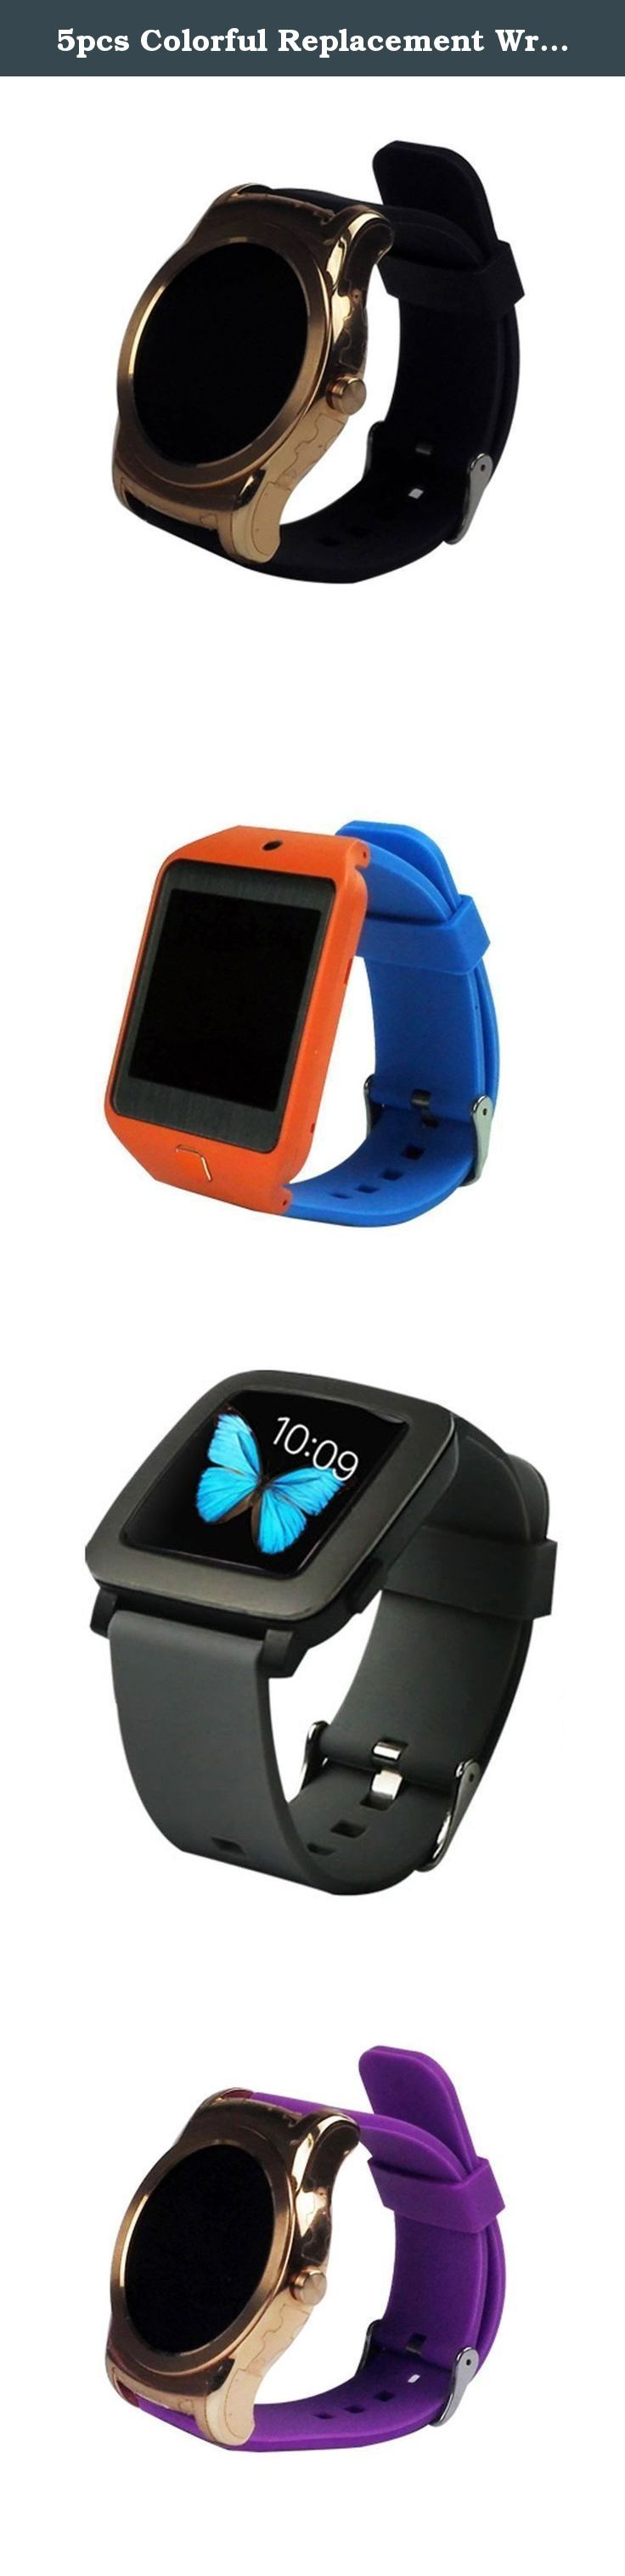 5pcs Colorful Replacement Wrist Band Strap For Pebble Time Smart Watch Bracelet (5Colors). Made of high quality silicone, it feels great when wearing; Please NOTE: only for pebble time 22mm width band, not for pebble steel, not for pebble time round Pebble time watch band, replace pebble watch watch band easily and directly. 11 different wristbands for pebble time smart watch: Silicone (black blue grey lime navy purple red white); Pattern (Owl and Volume flower); Leather (black) Softness…